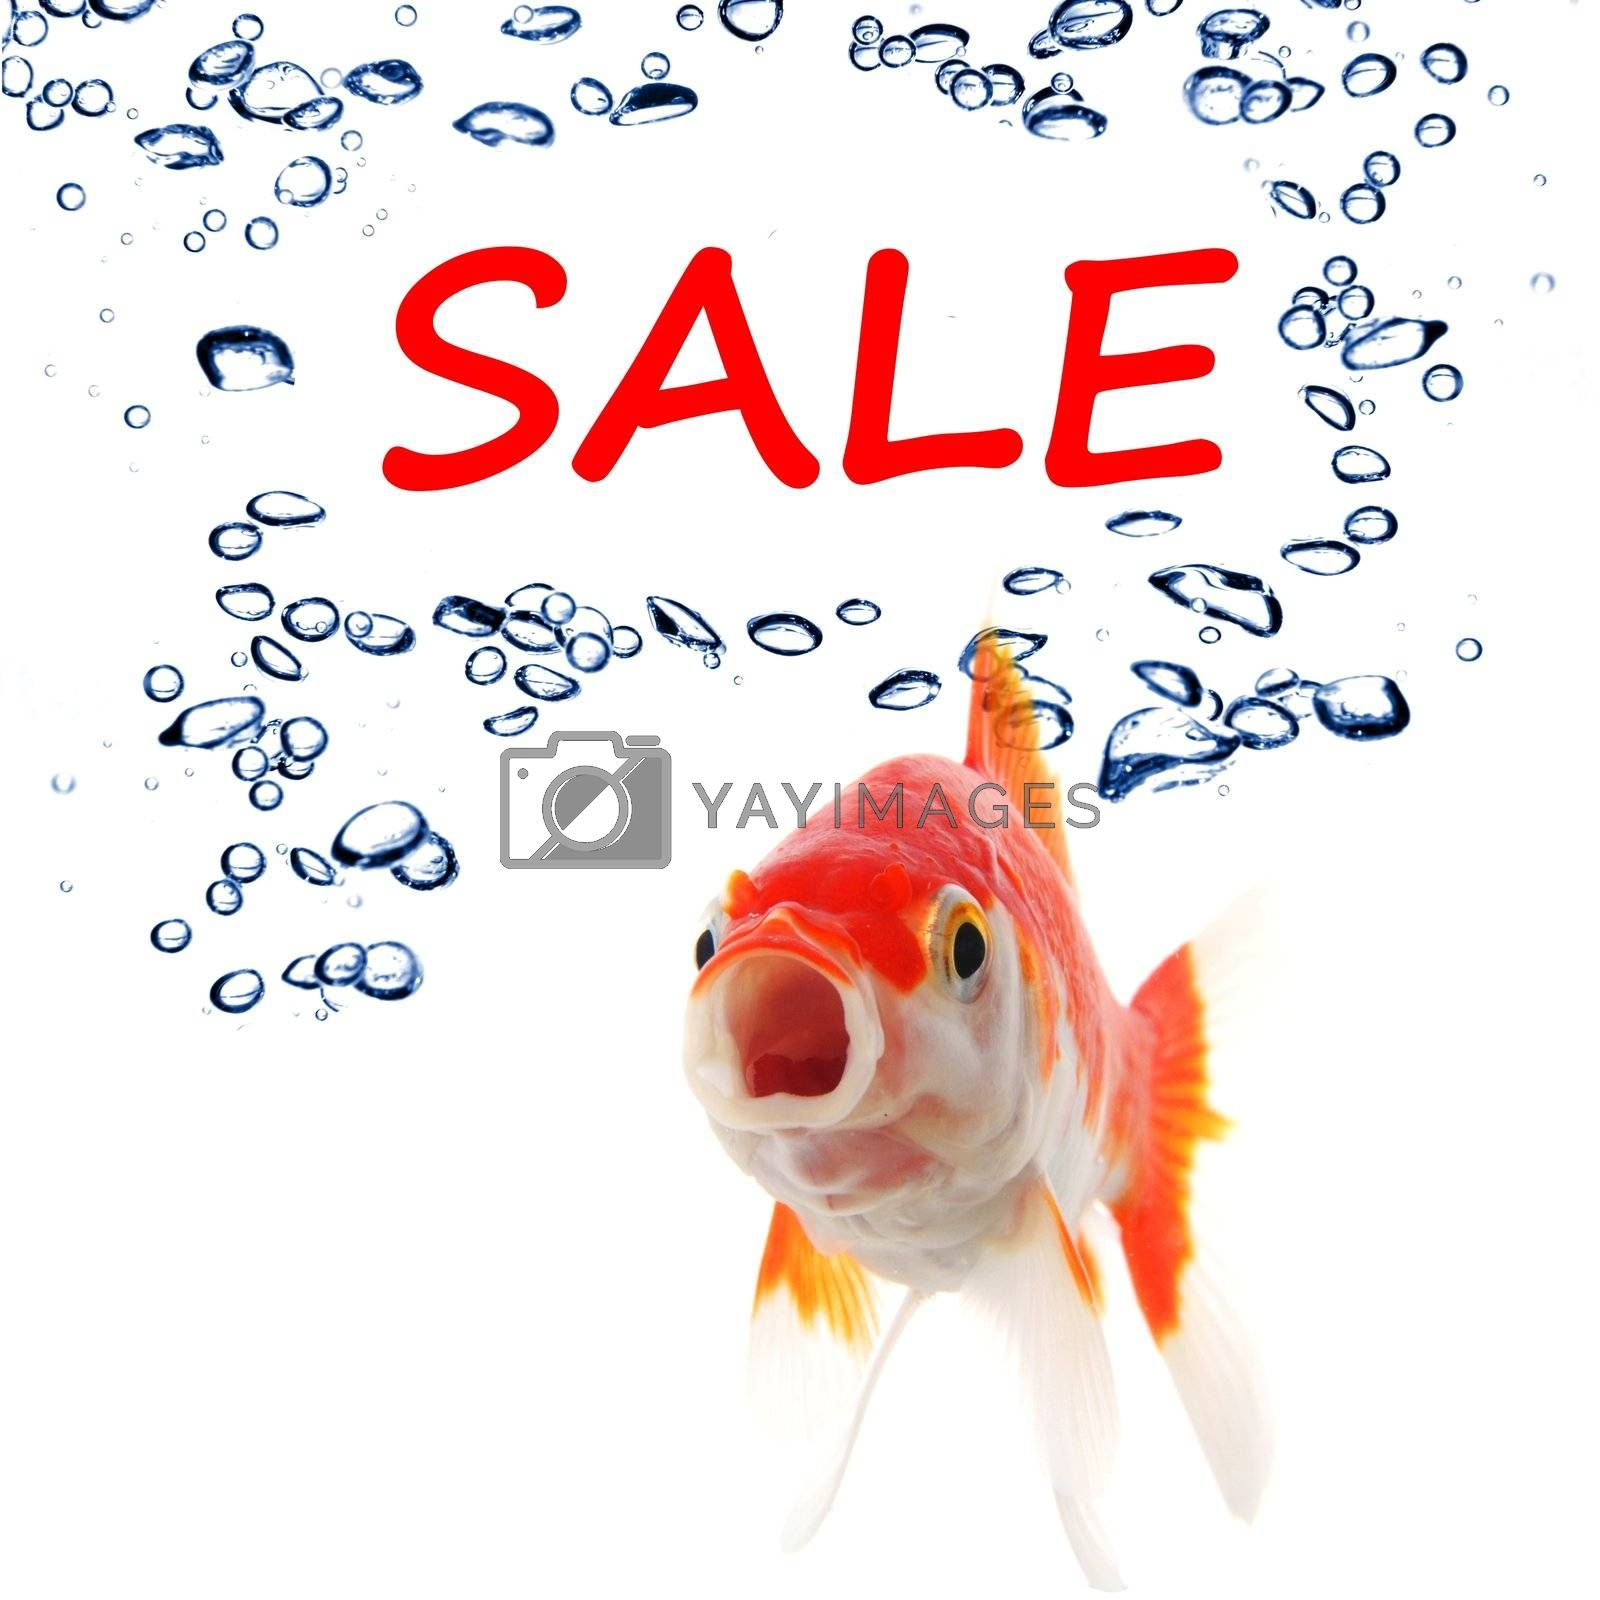 Royalty free image of sale by gunnar3000